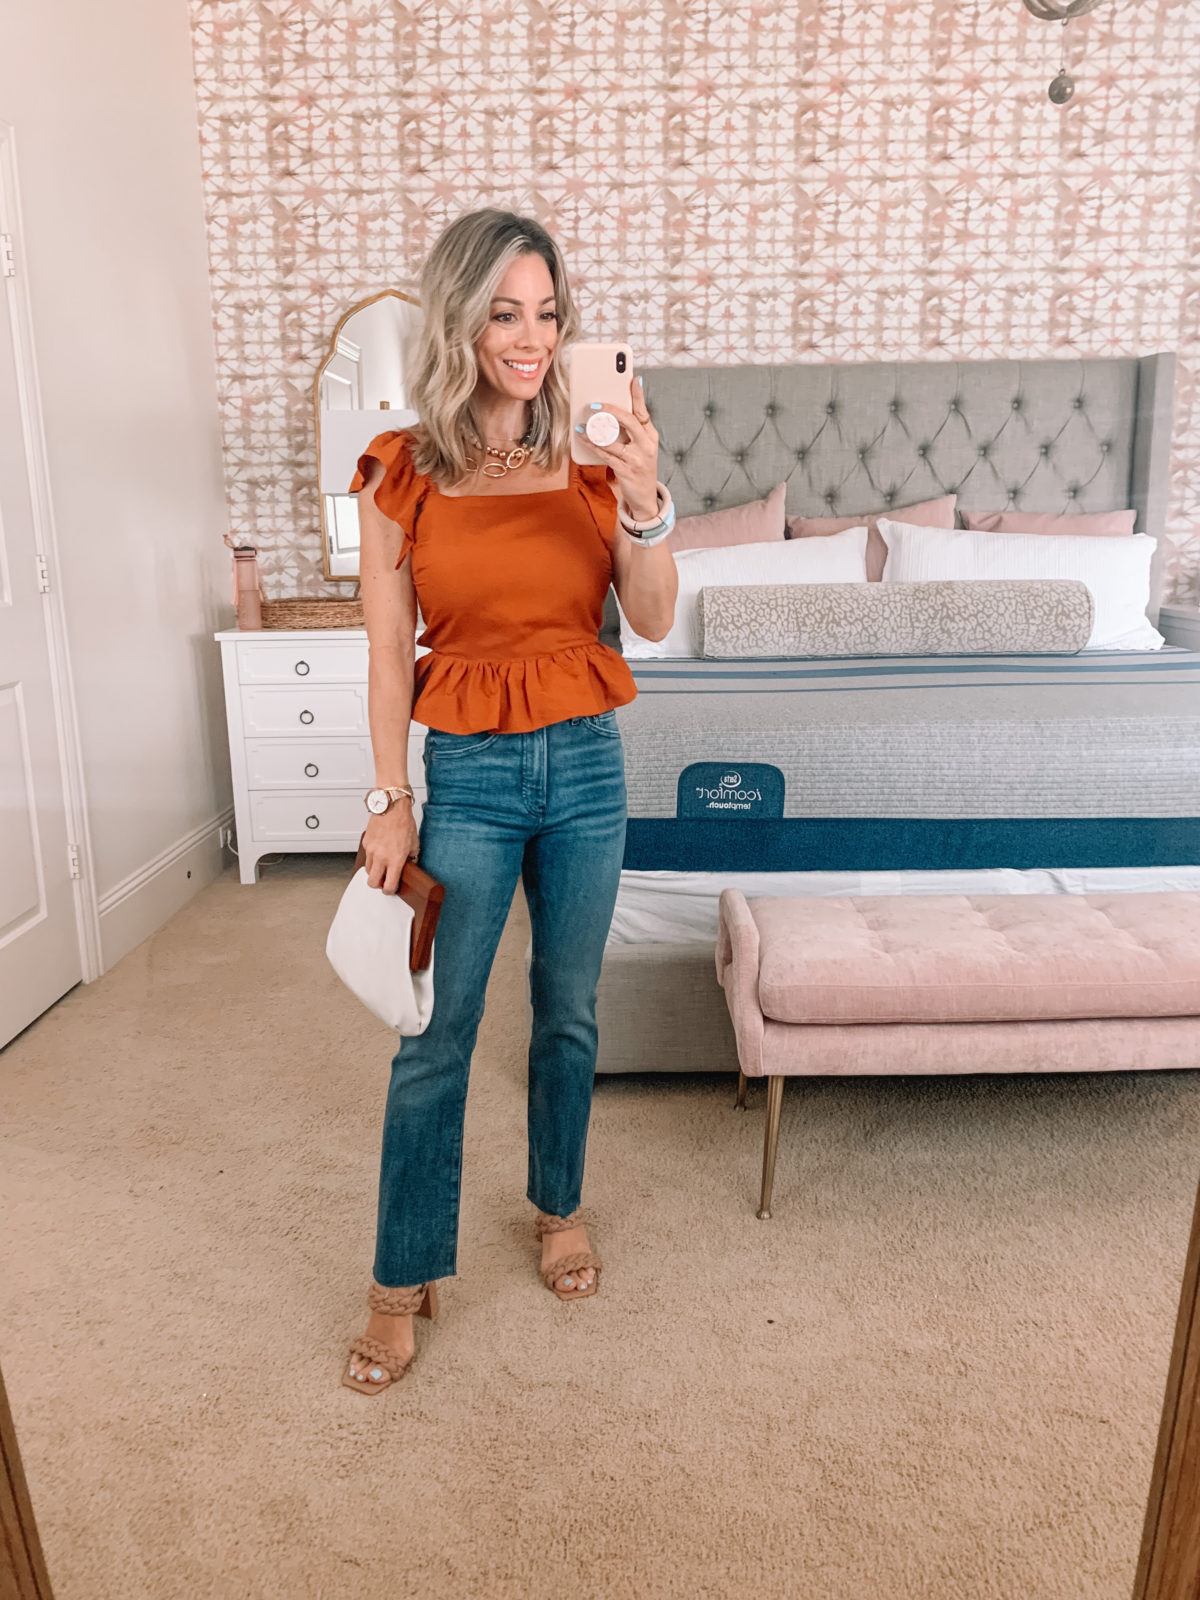 Dressing Room Finds, Express, Ruffle Sleeve Top, Jeans, Sandals, Clutch